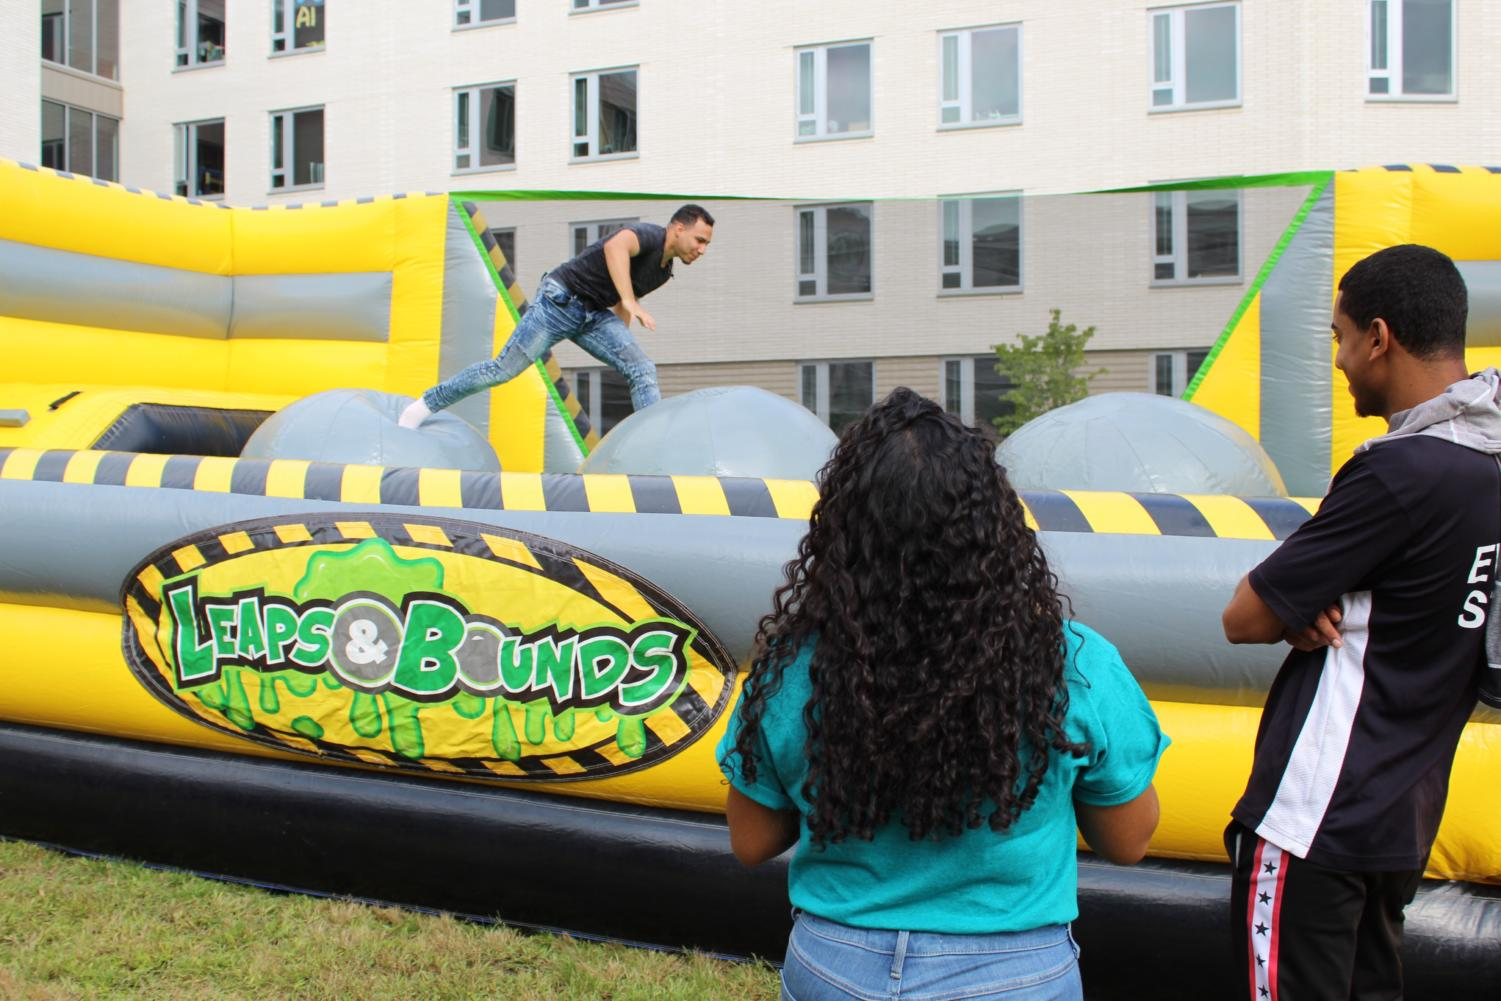 Alumni Quad was home to inflatable obstacles that challenged attendees at Programming Board's